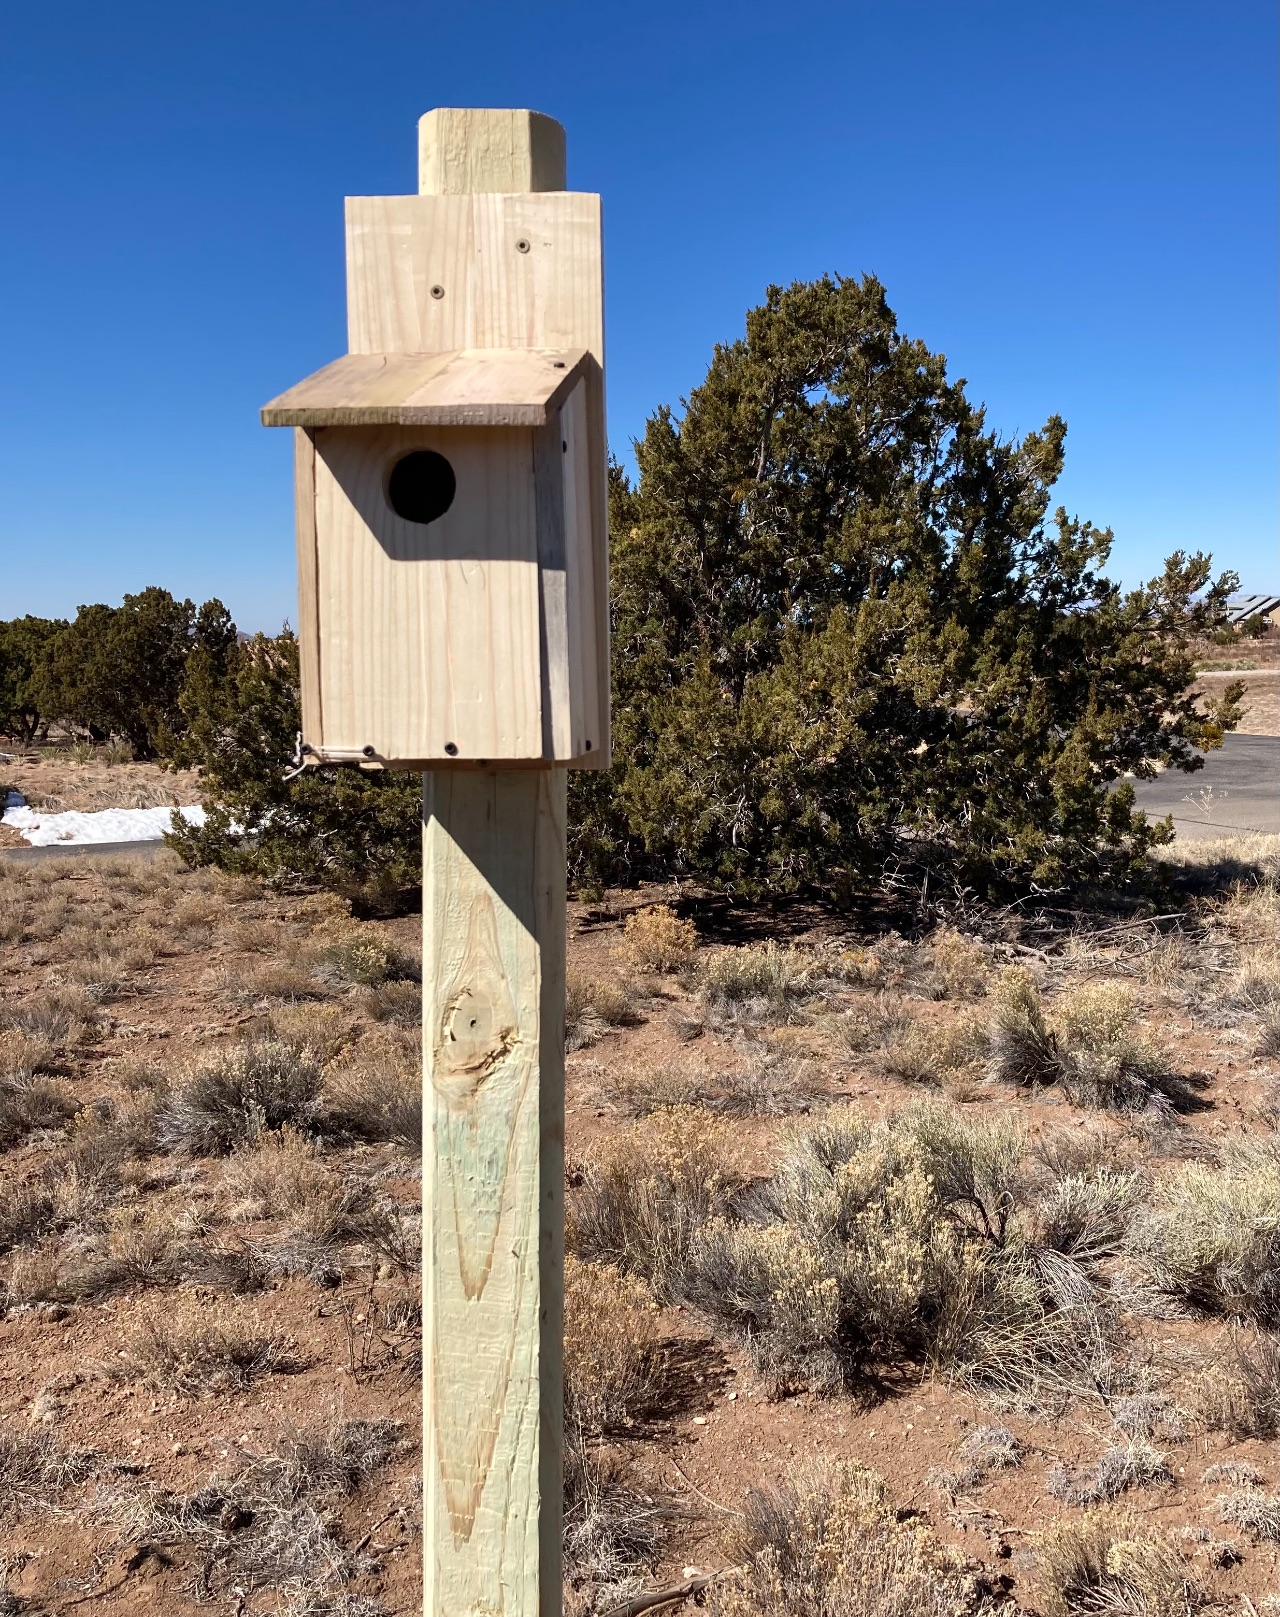 Birdhouse on post, front view